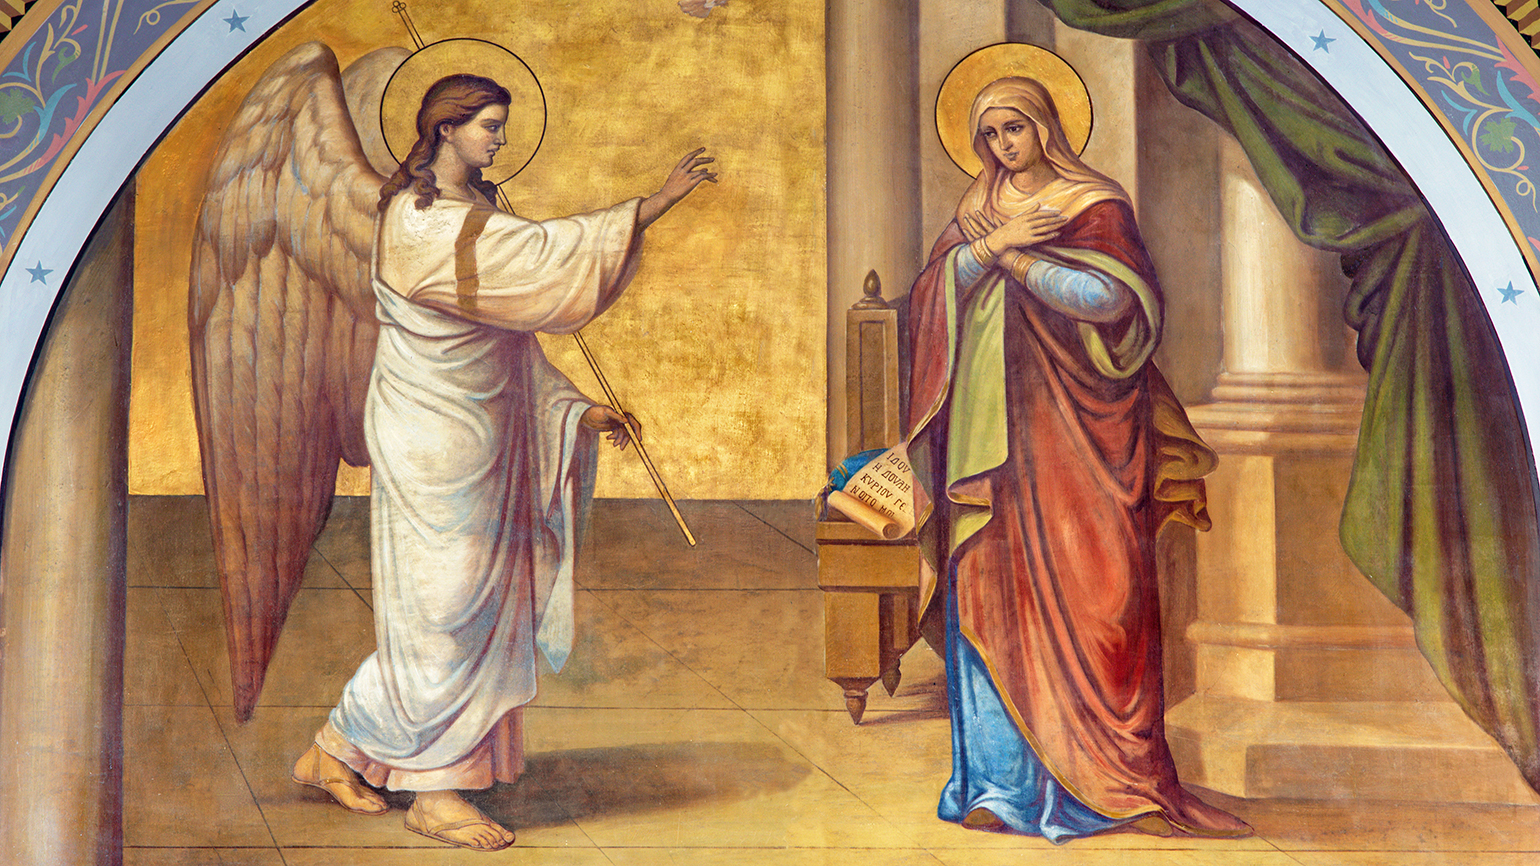 Mary is visited by an angel